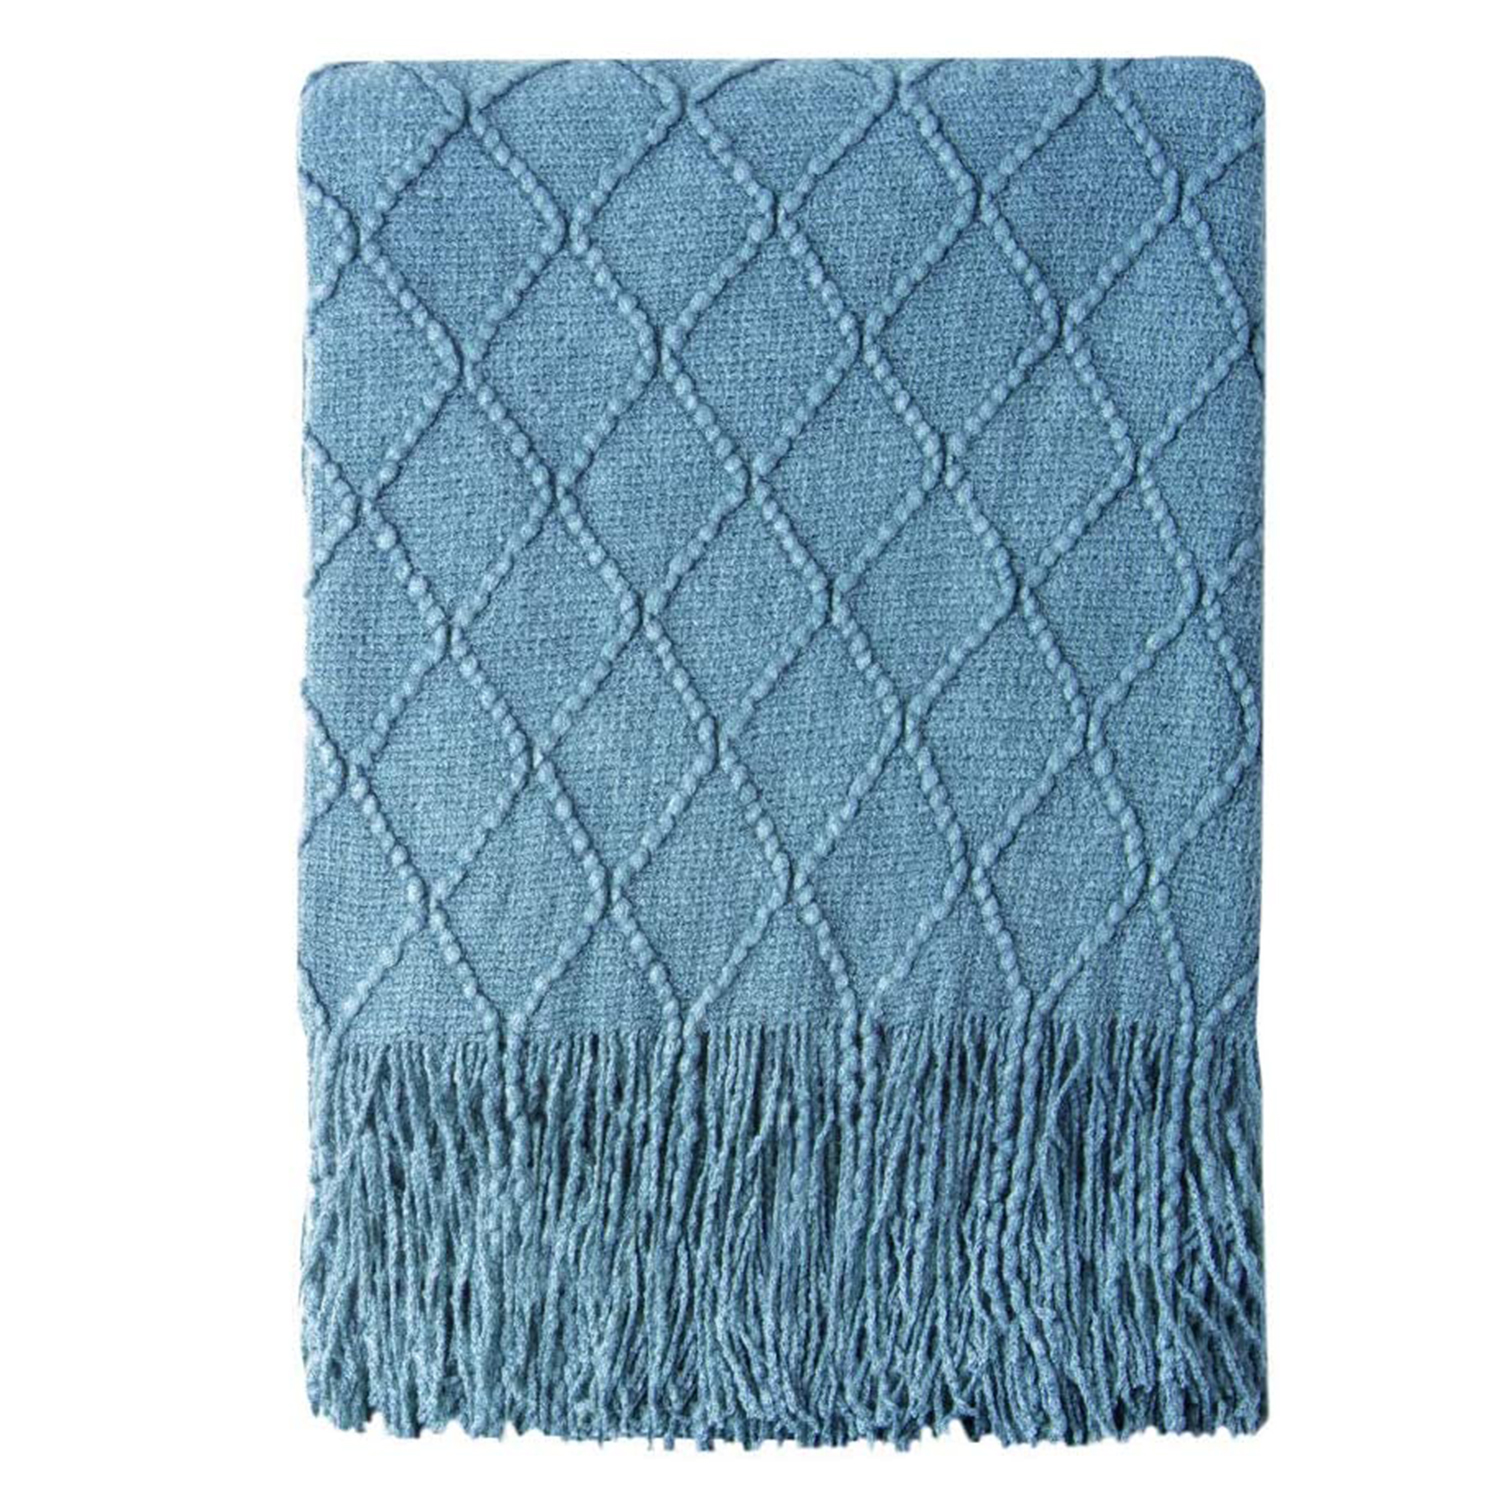 Bourina Knitted Throw Blanket Soft Sofa Throw Couch Blanket